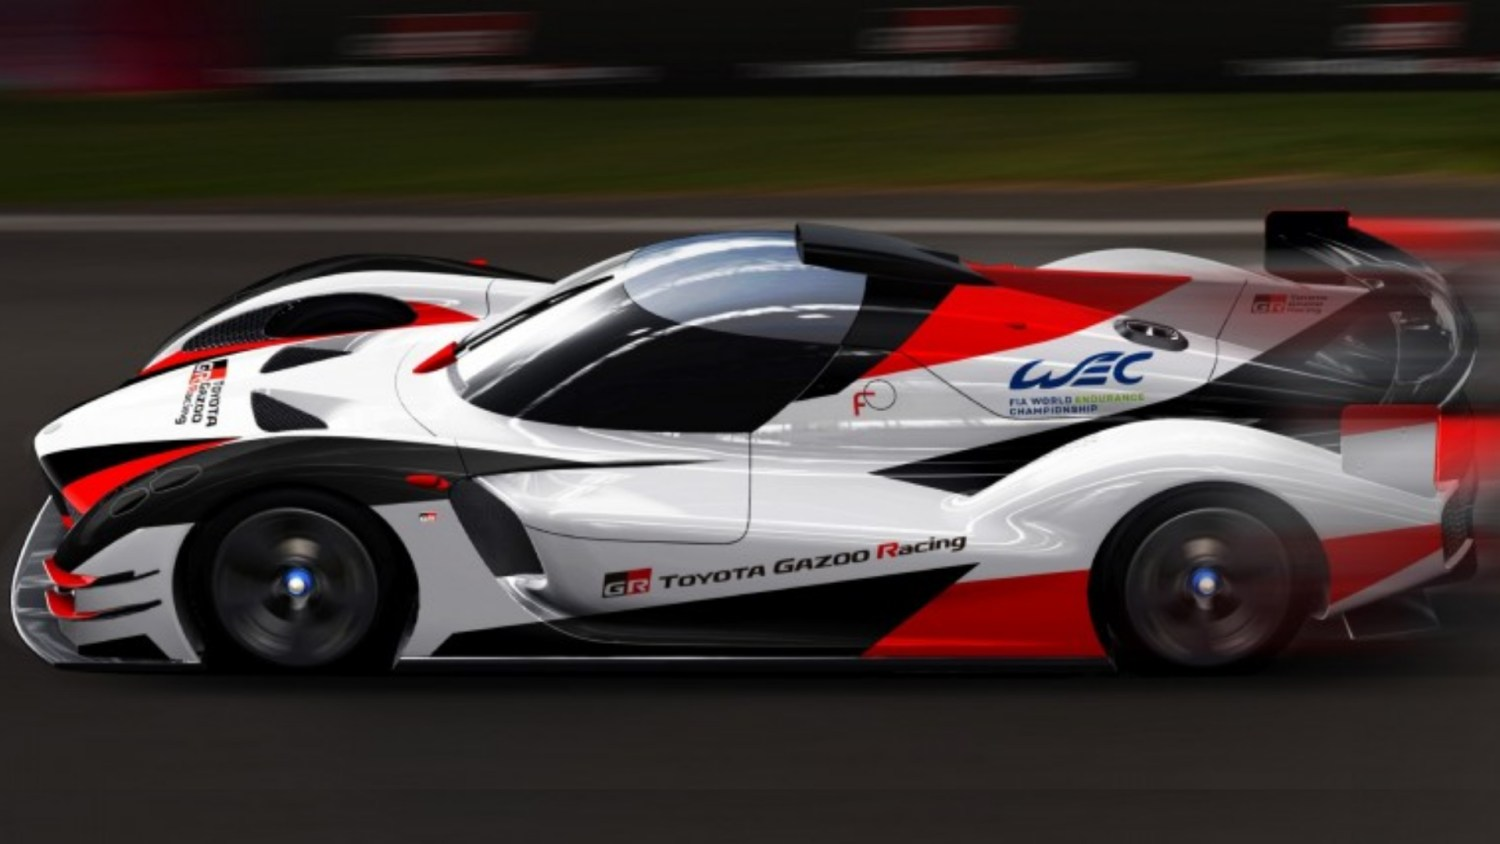 Toyota GR Supersport to race at Le Mans